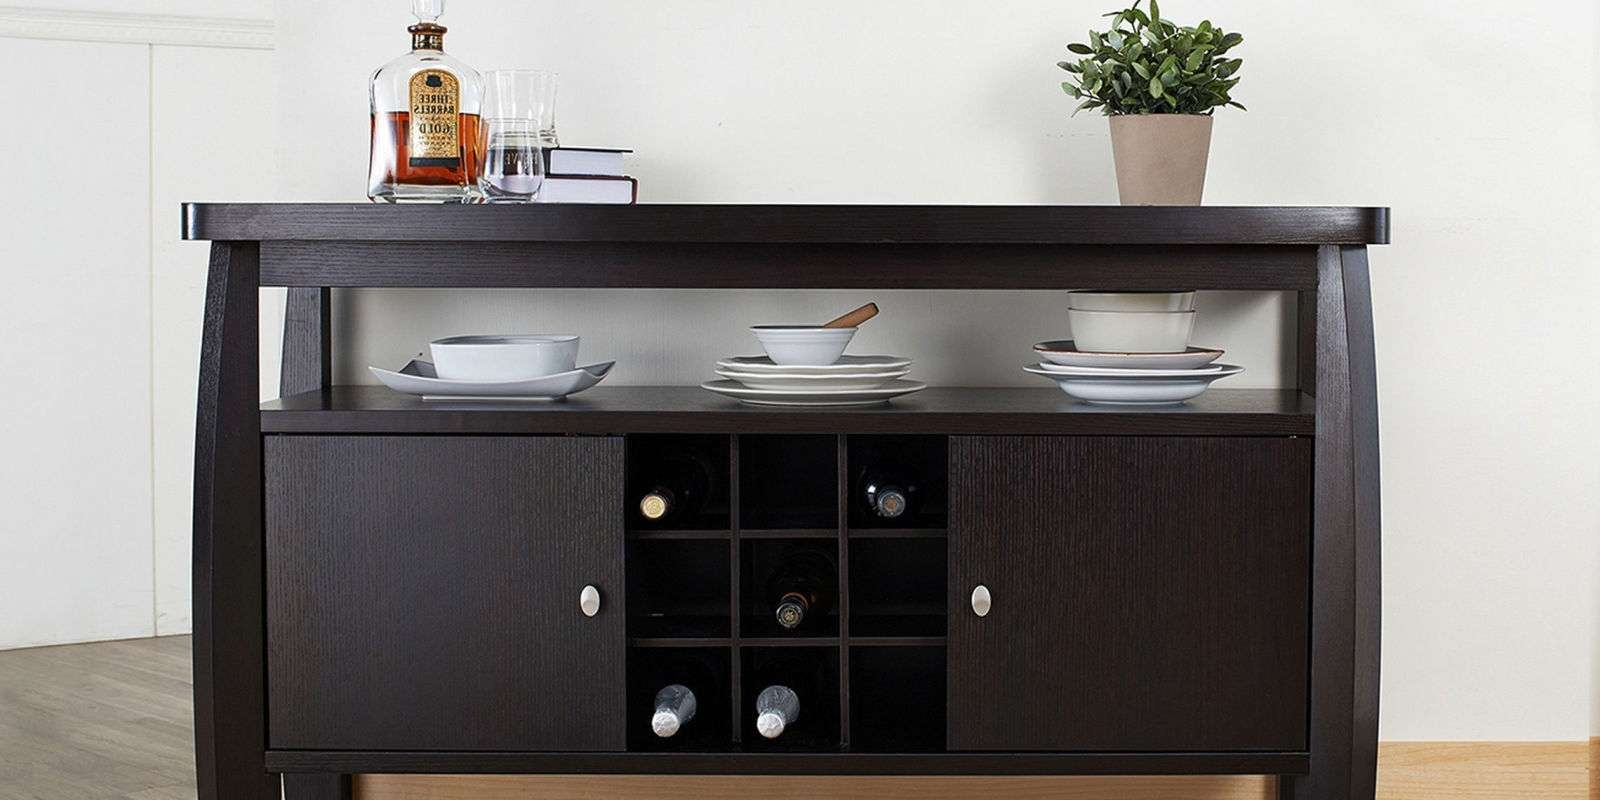 11 Best Sideboards And Buffets In 2018 – Reviews Of Sideboards Within Sideboards And Tables (View 4 of 20)